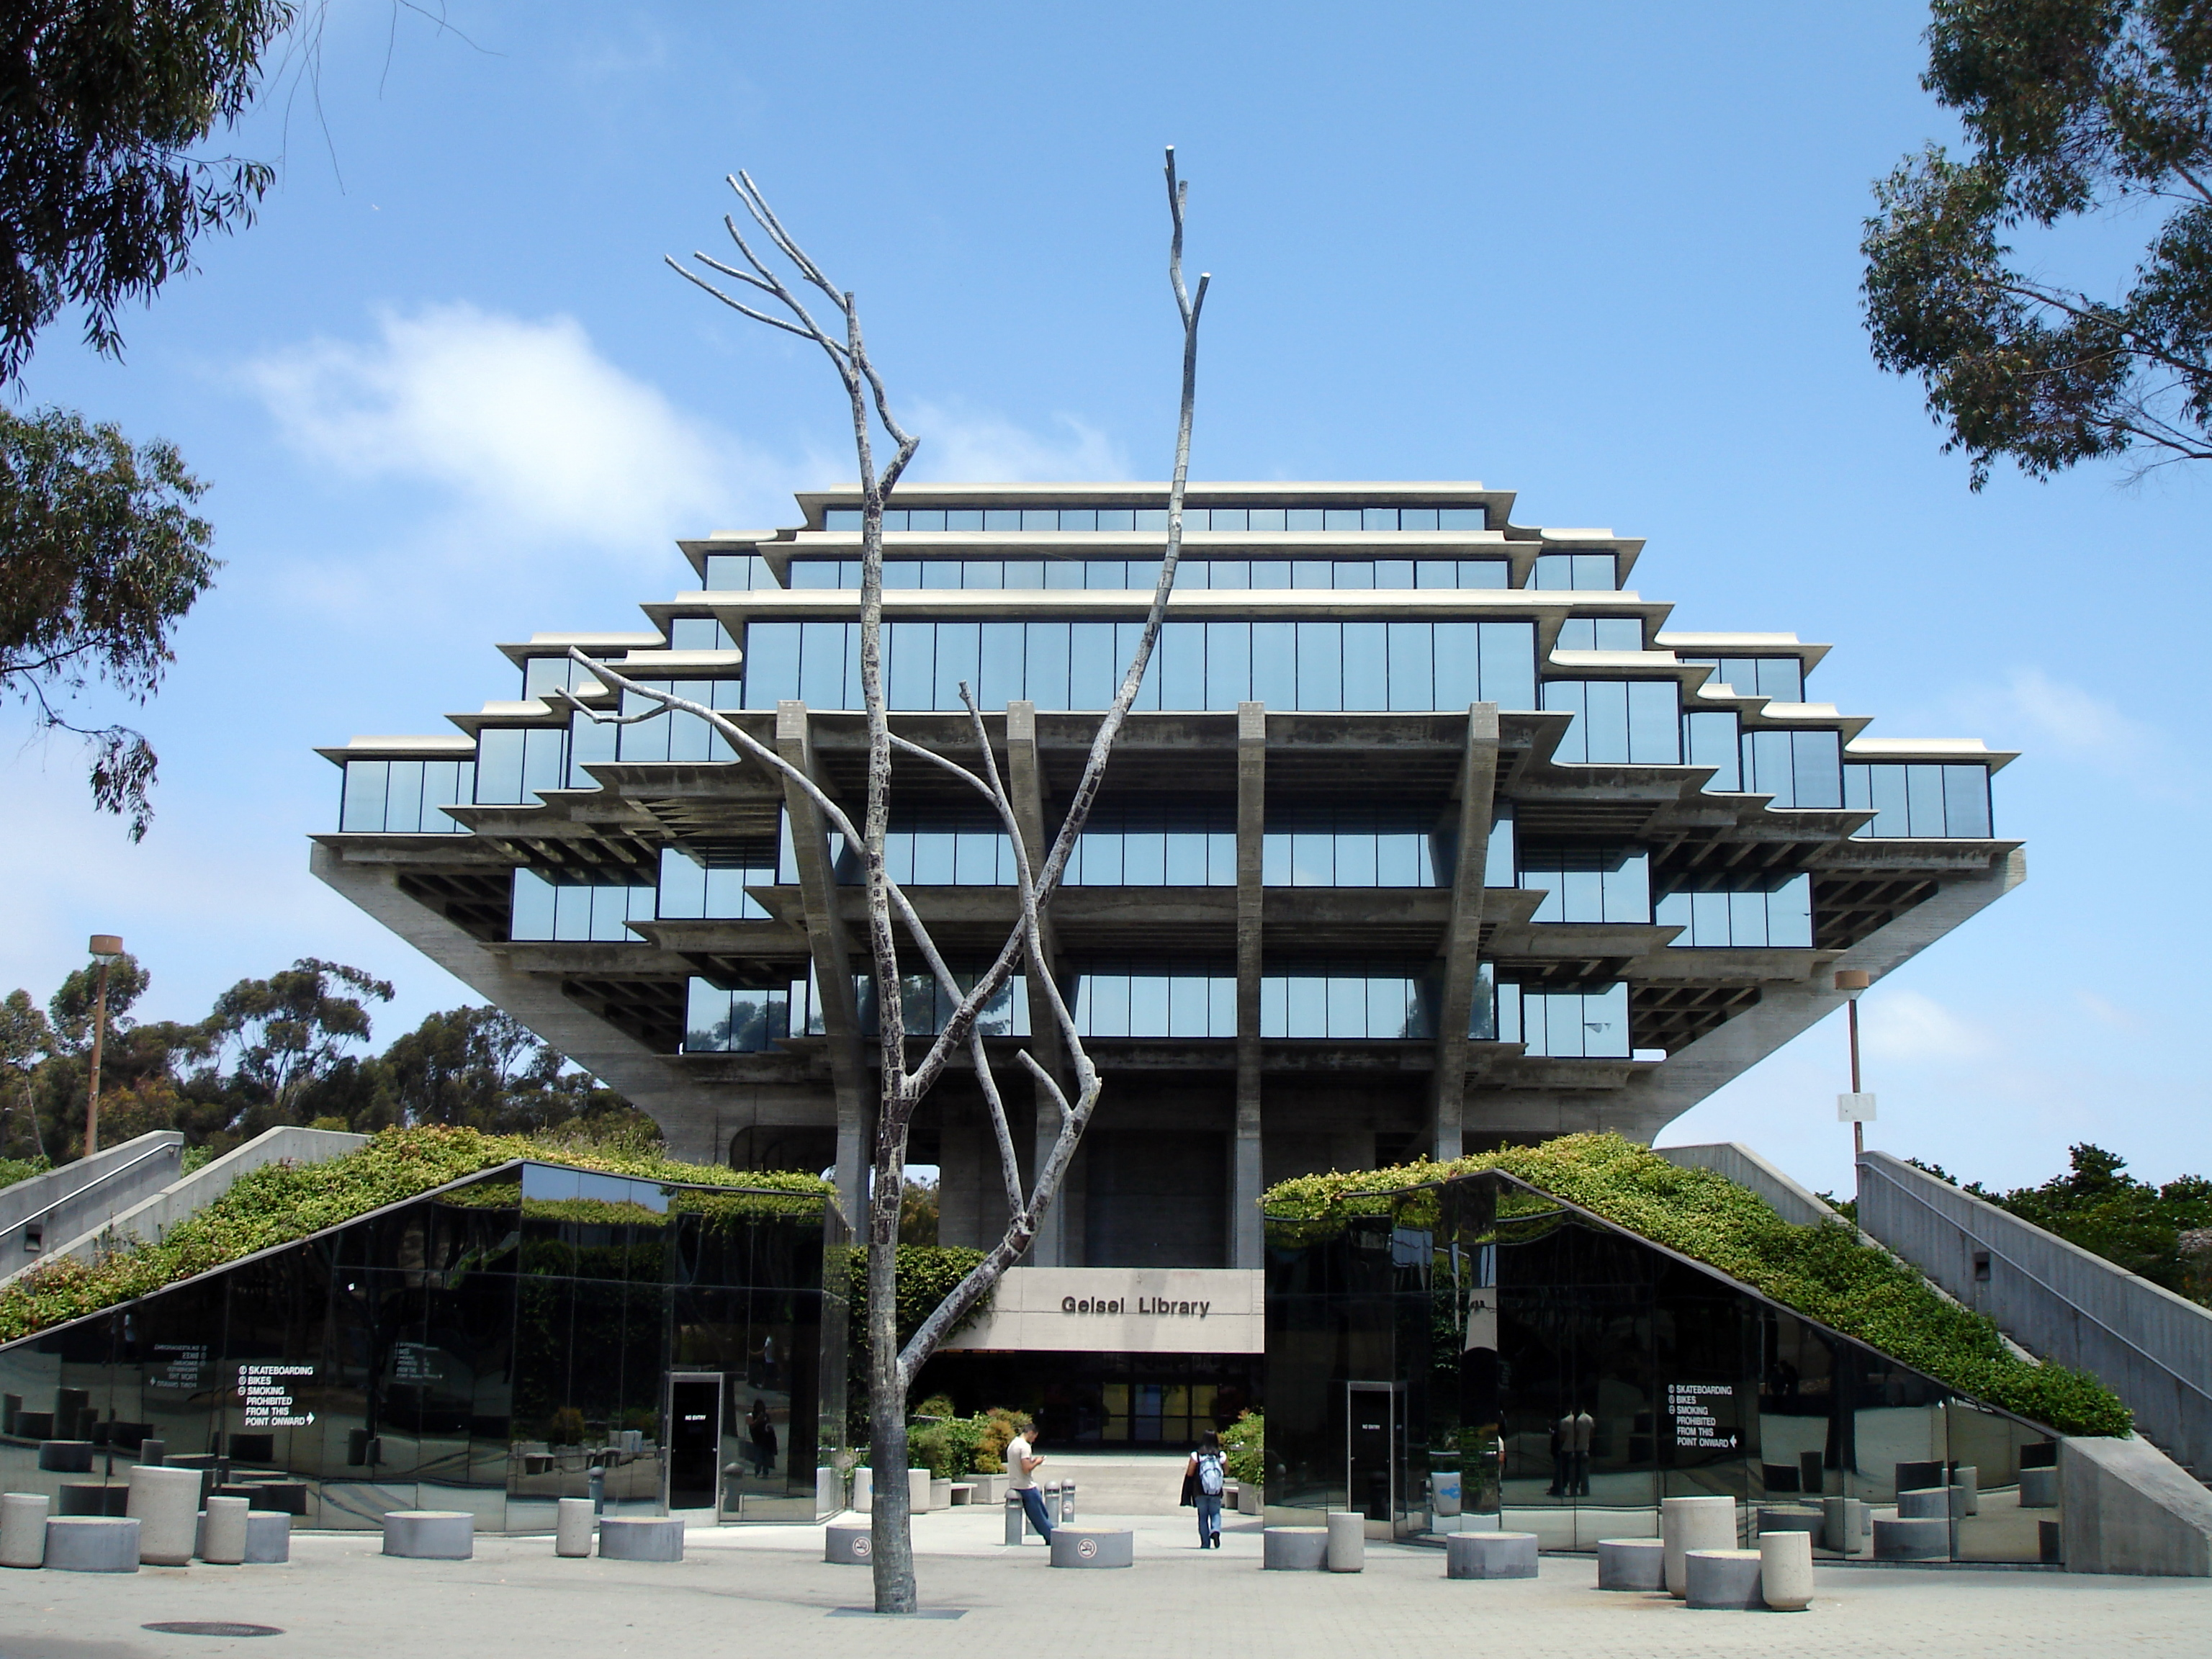 Geisel_Library,_UCSD